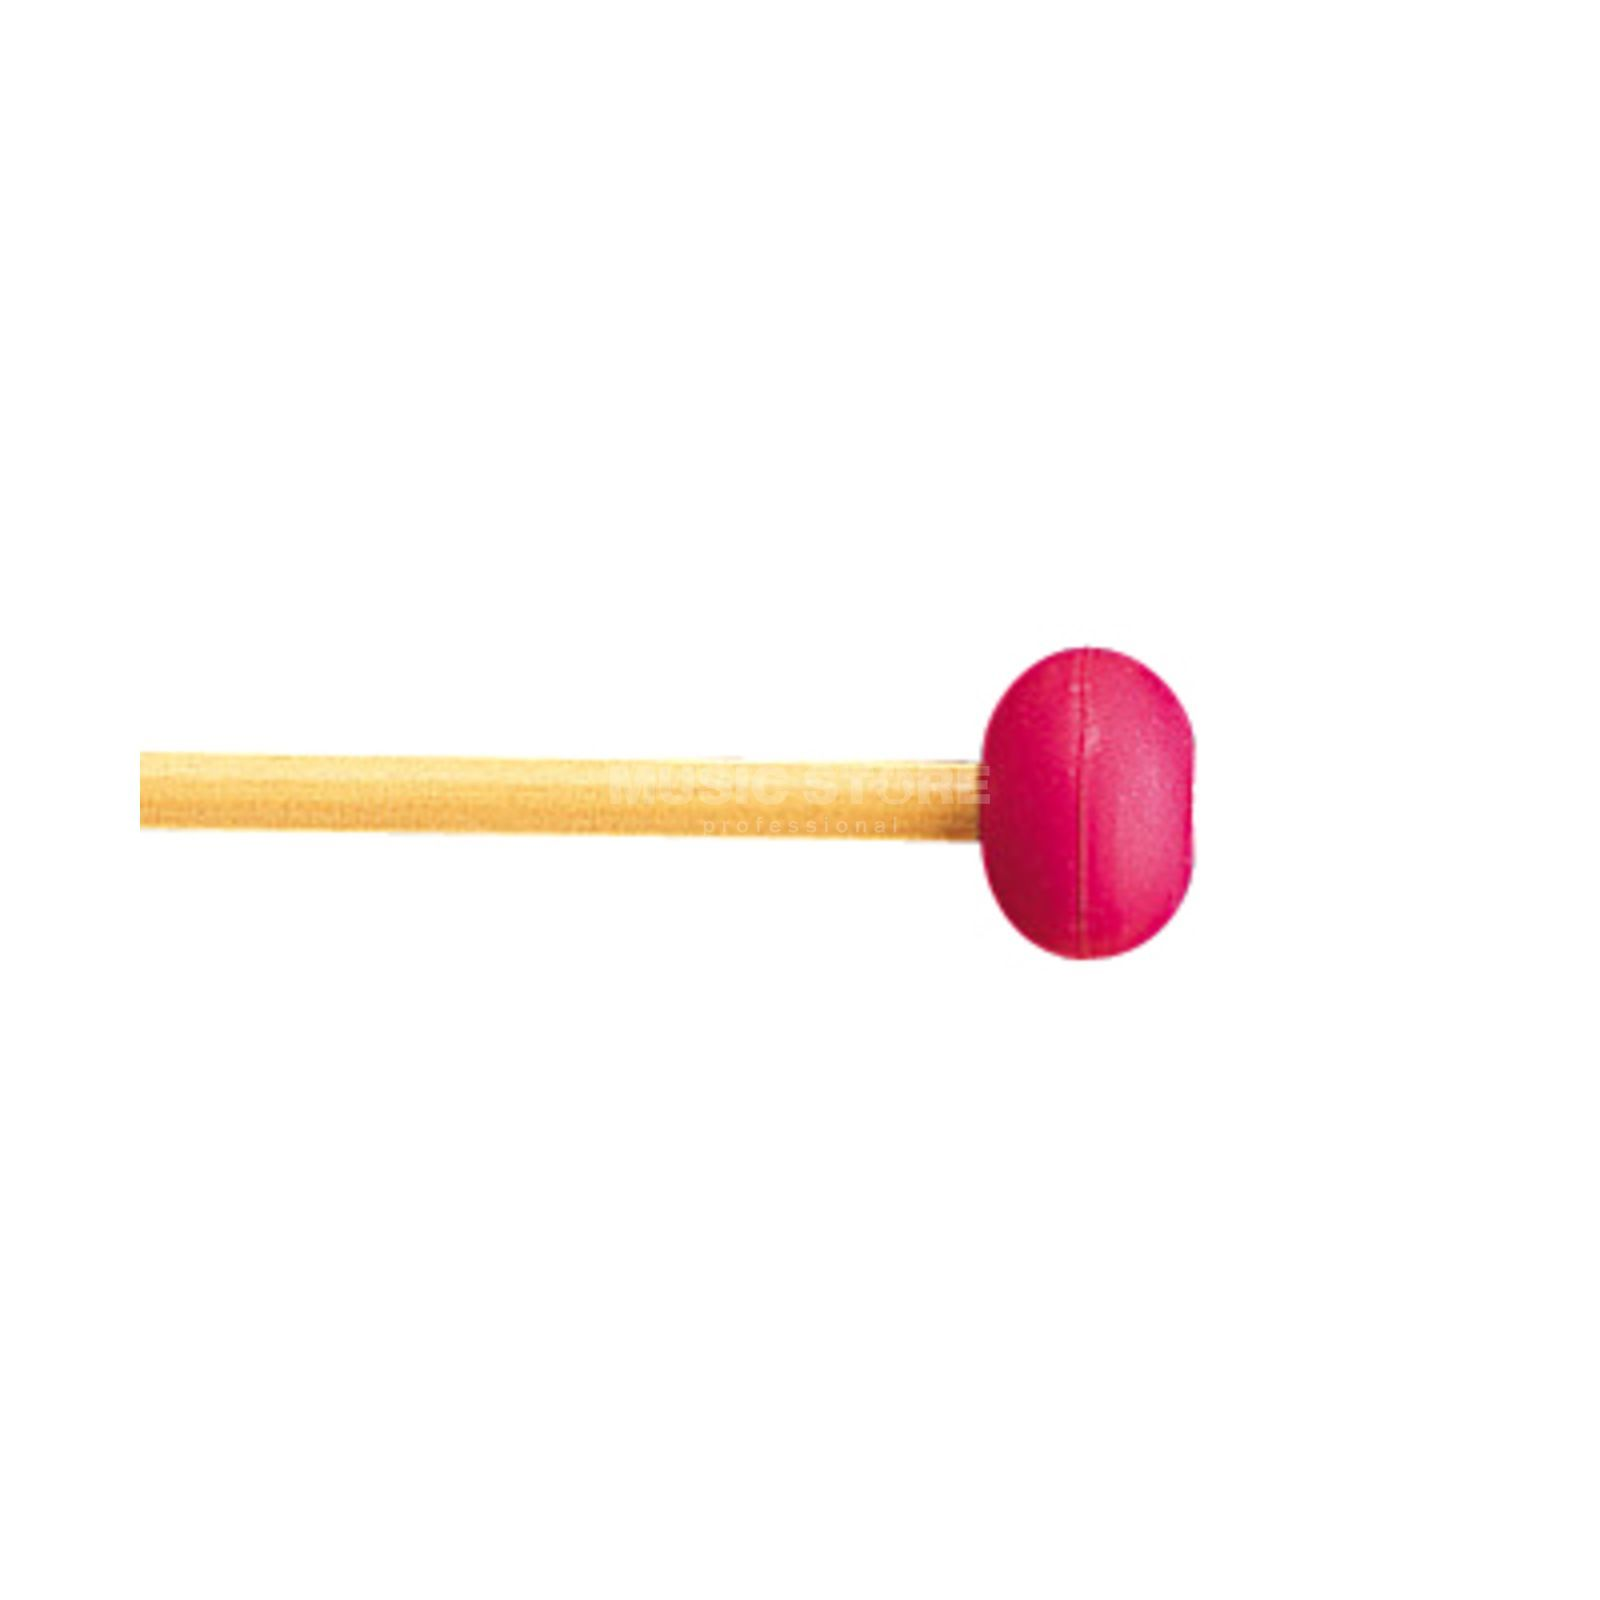 Yamaha Mallets MR-1130, medium soft, f. Marimbaphone Produktbillede